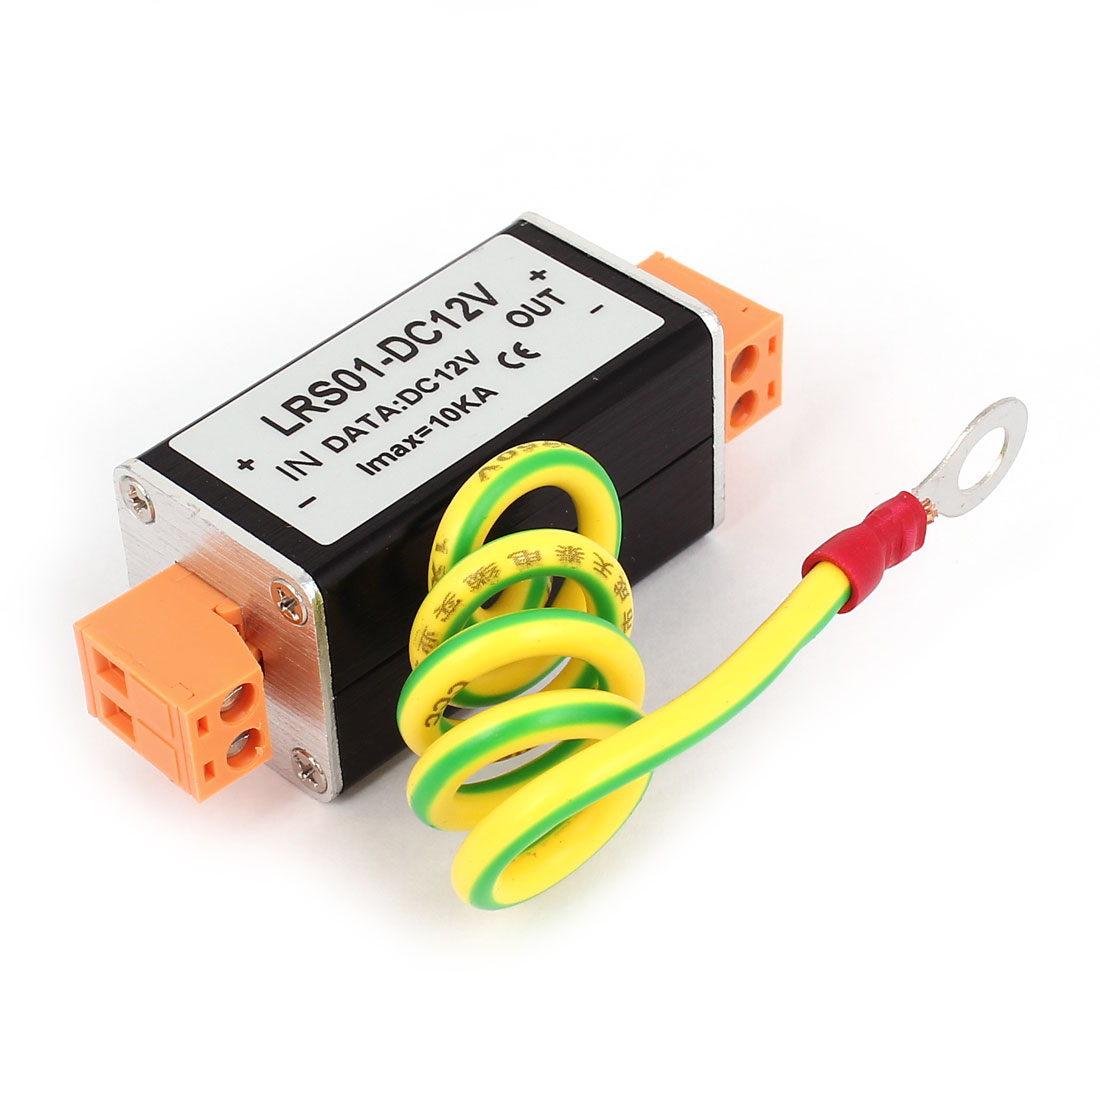 DC 12V Power Supply Surge Protection Arrester Black Orange